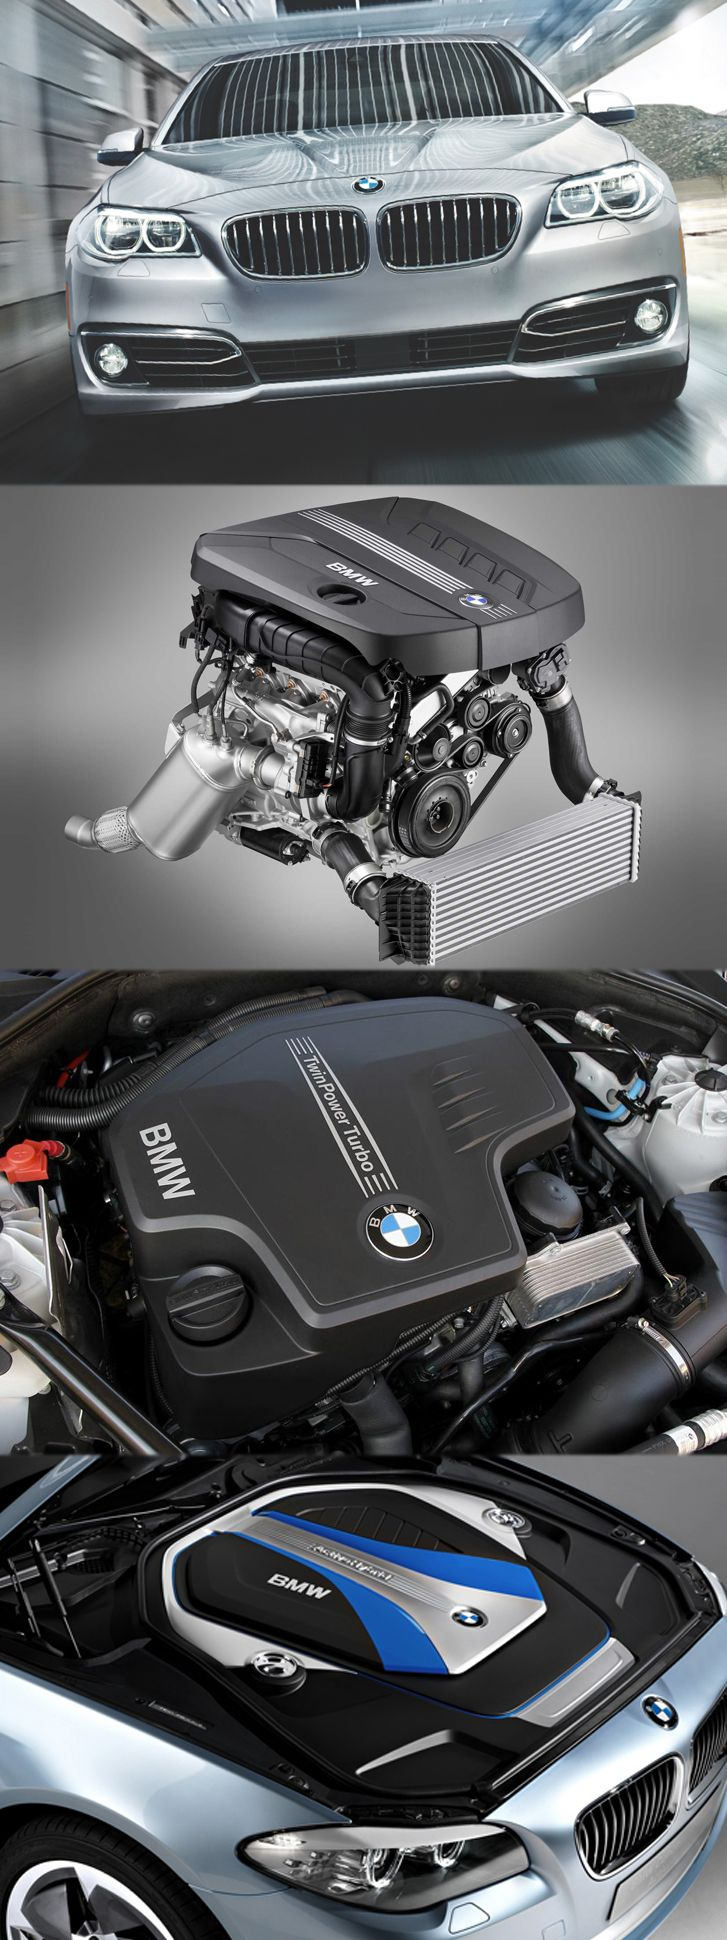 The BMW 5 Series, A Complete Executive Saloon For more detail at: https://www.enginetrust.co.uk/bmw-5-series-engines